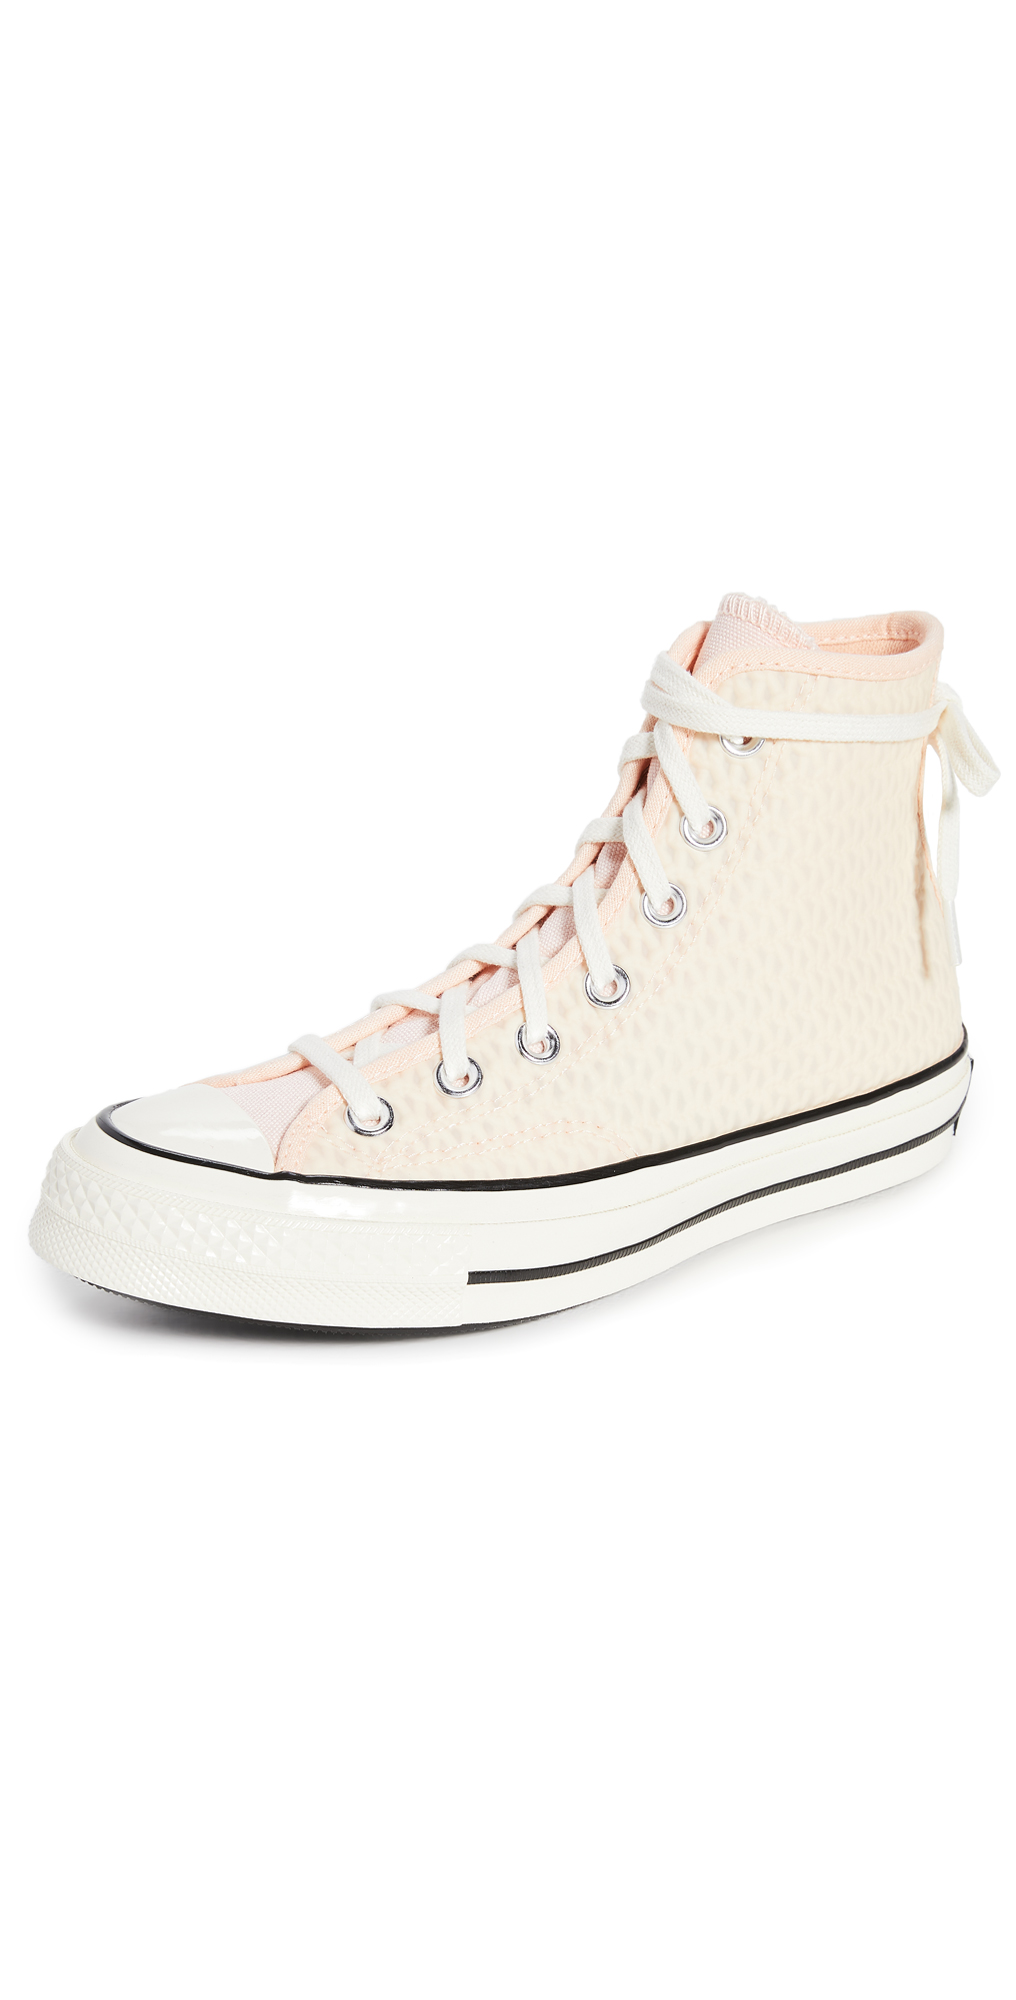 Converse Chuck 70 High Top Alt Exploration Sneakers